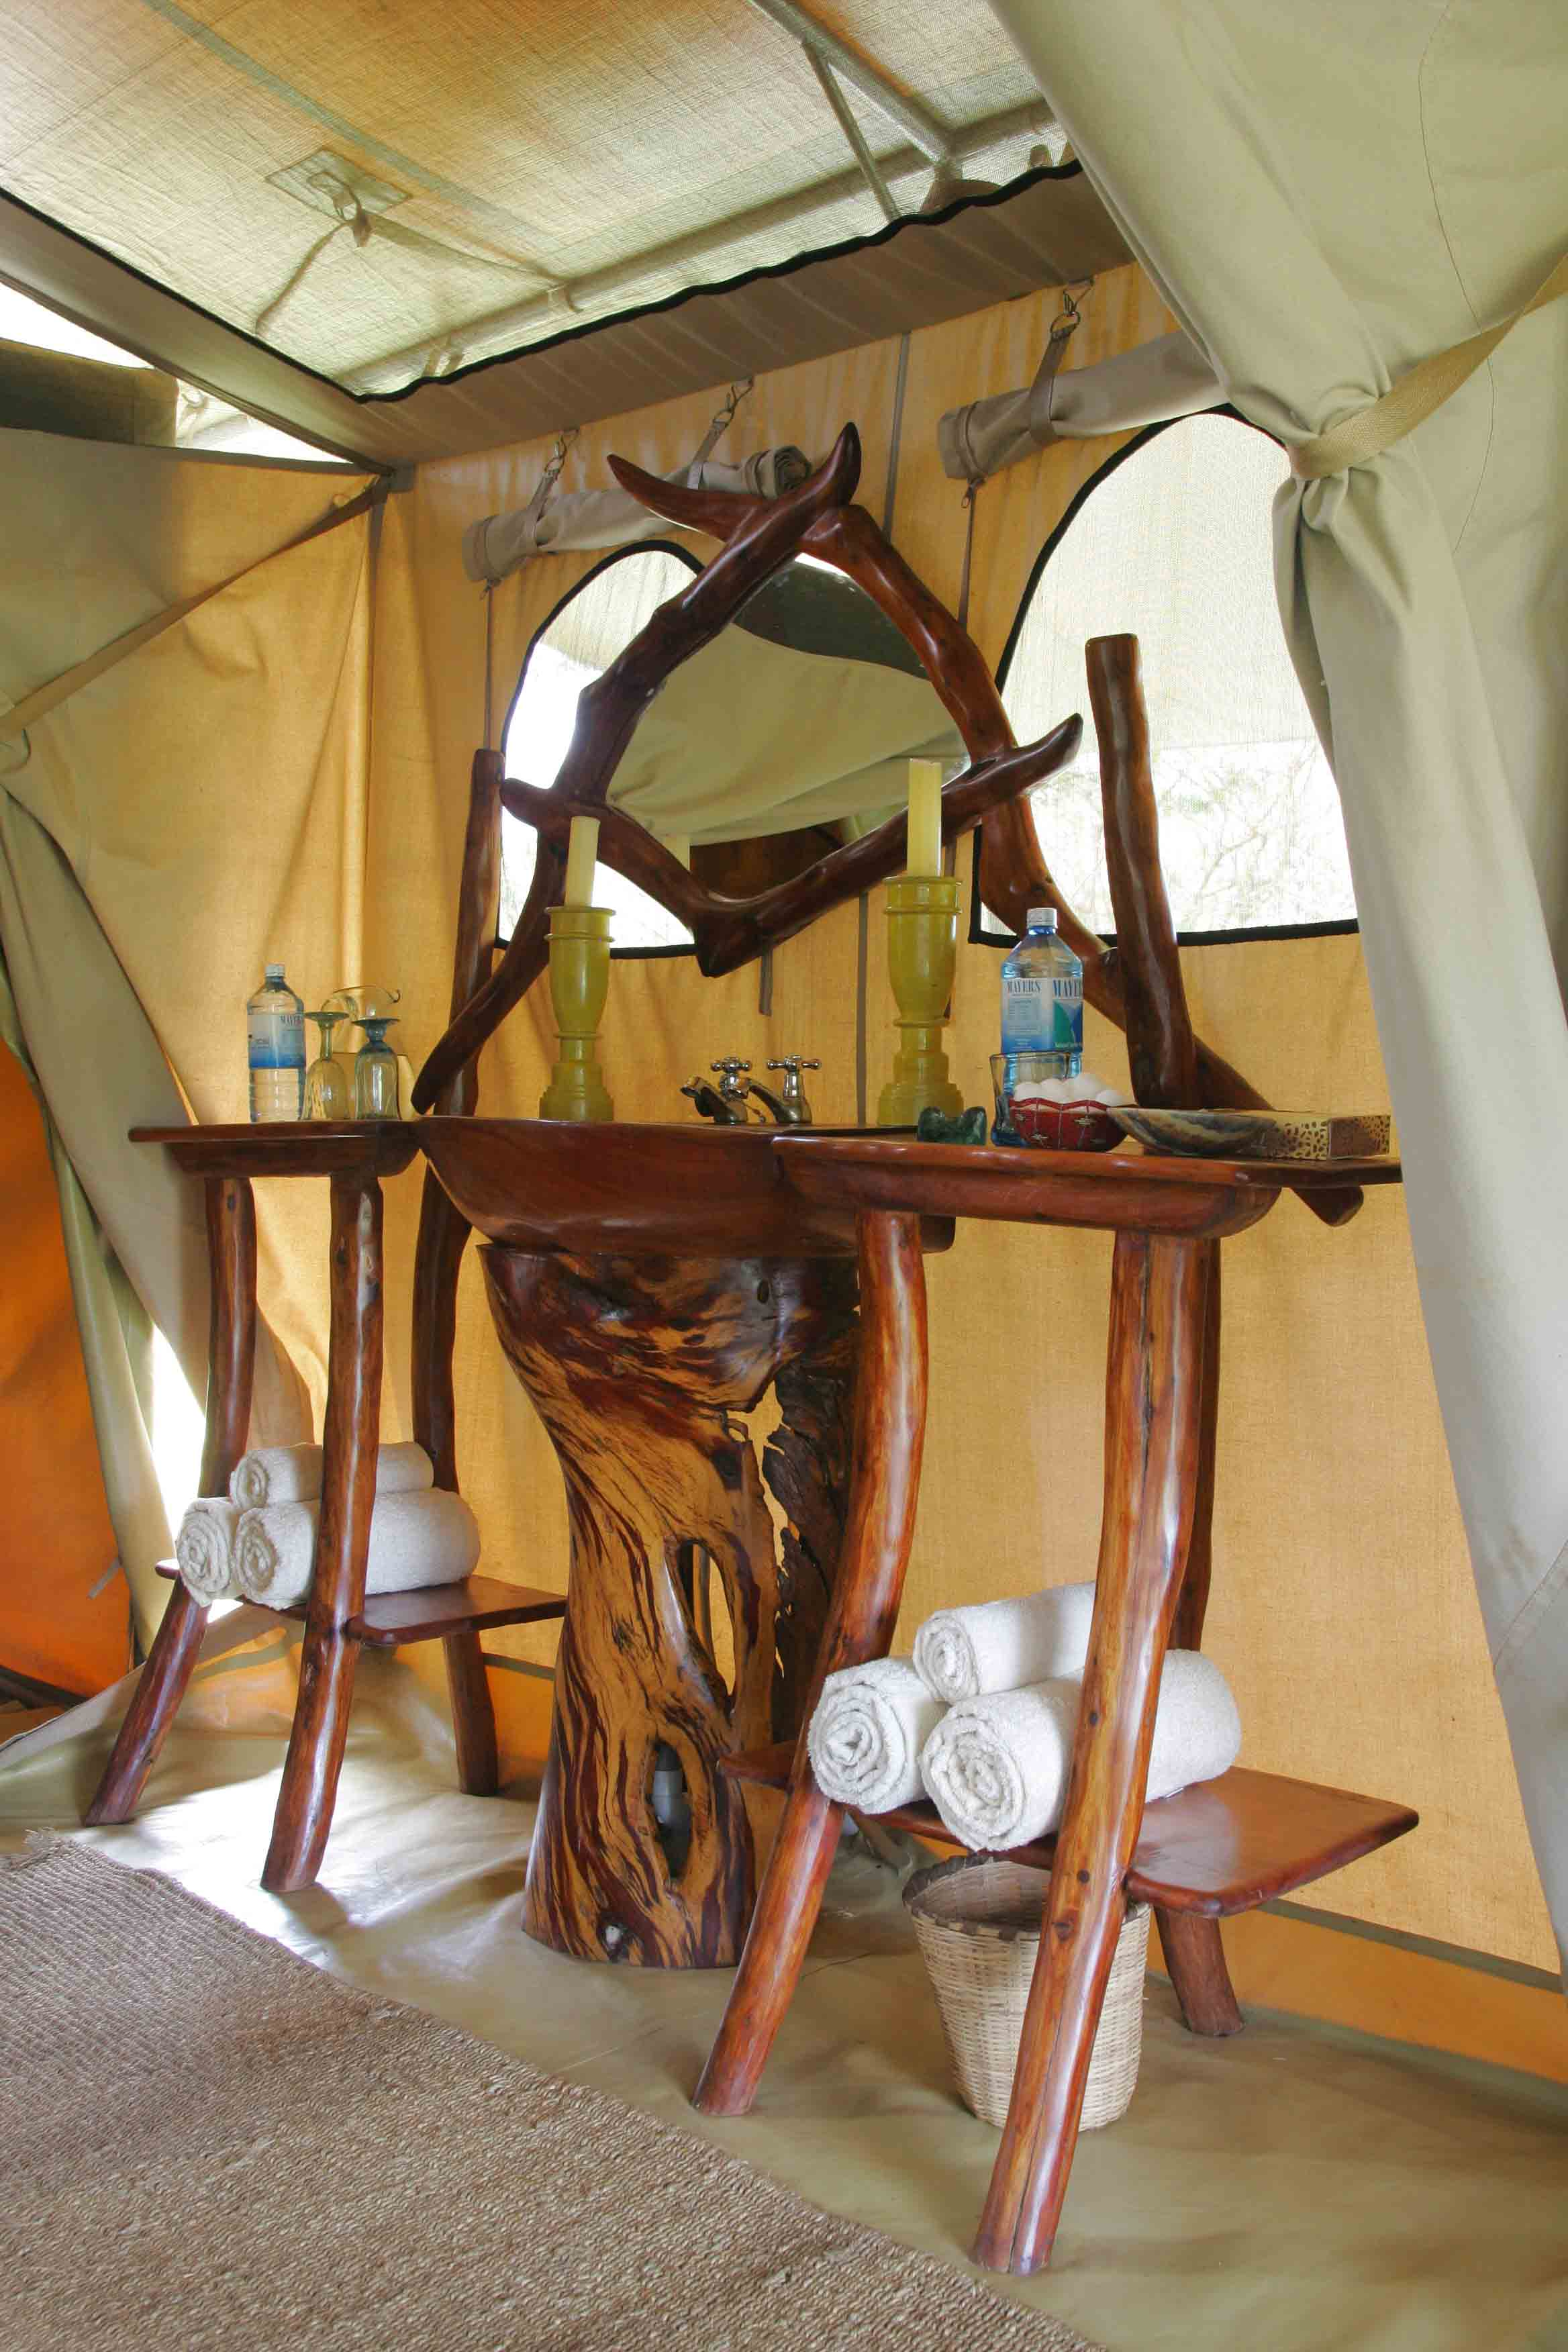 Hand crafted rose wood sinks inside Saruni Wild tents